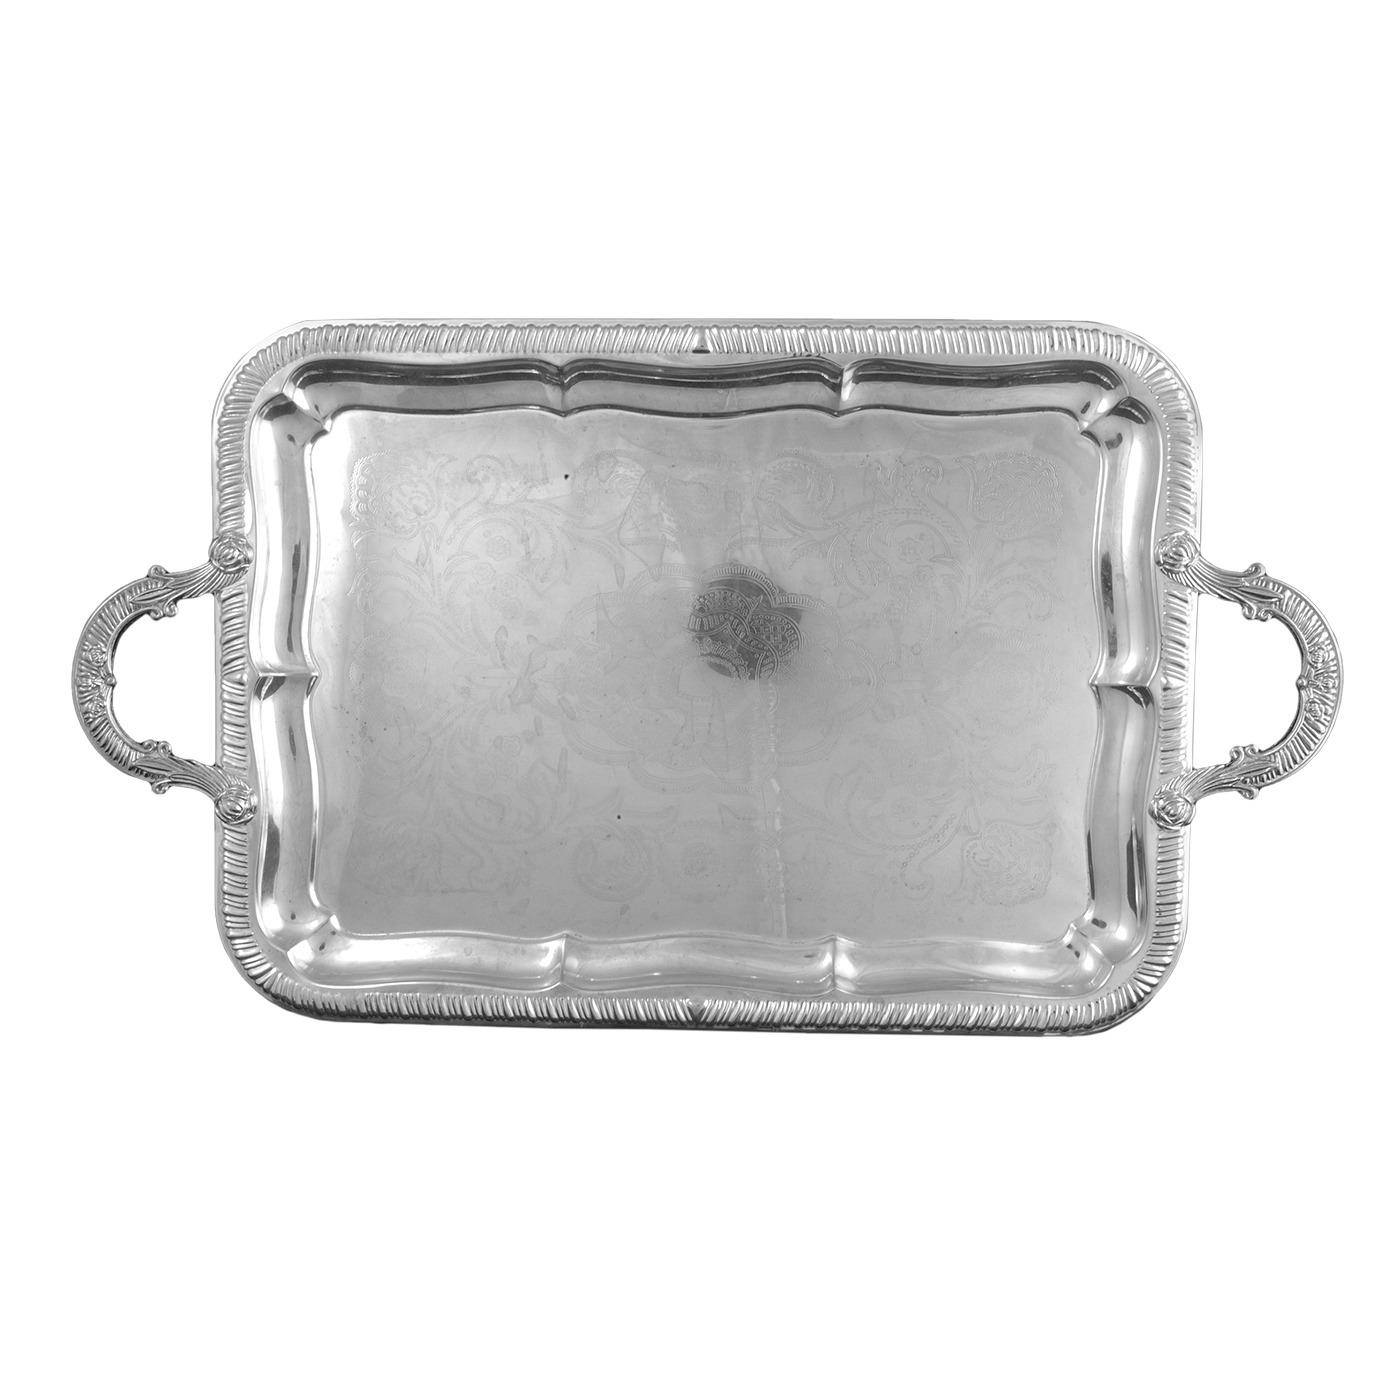 "Silver Oblong Tray With Handles - 13"" x 18"""